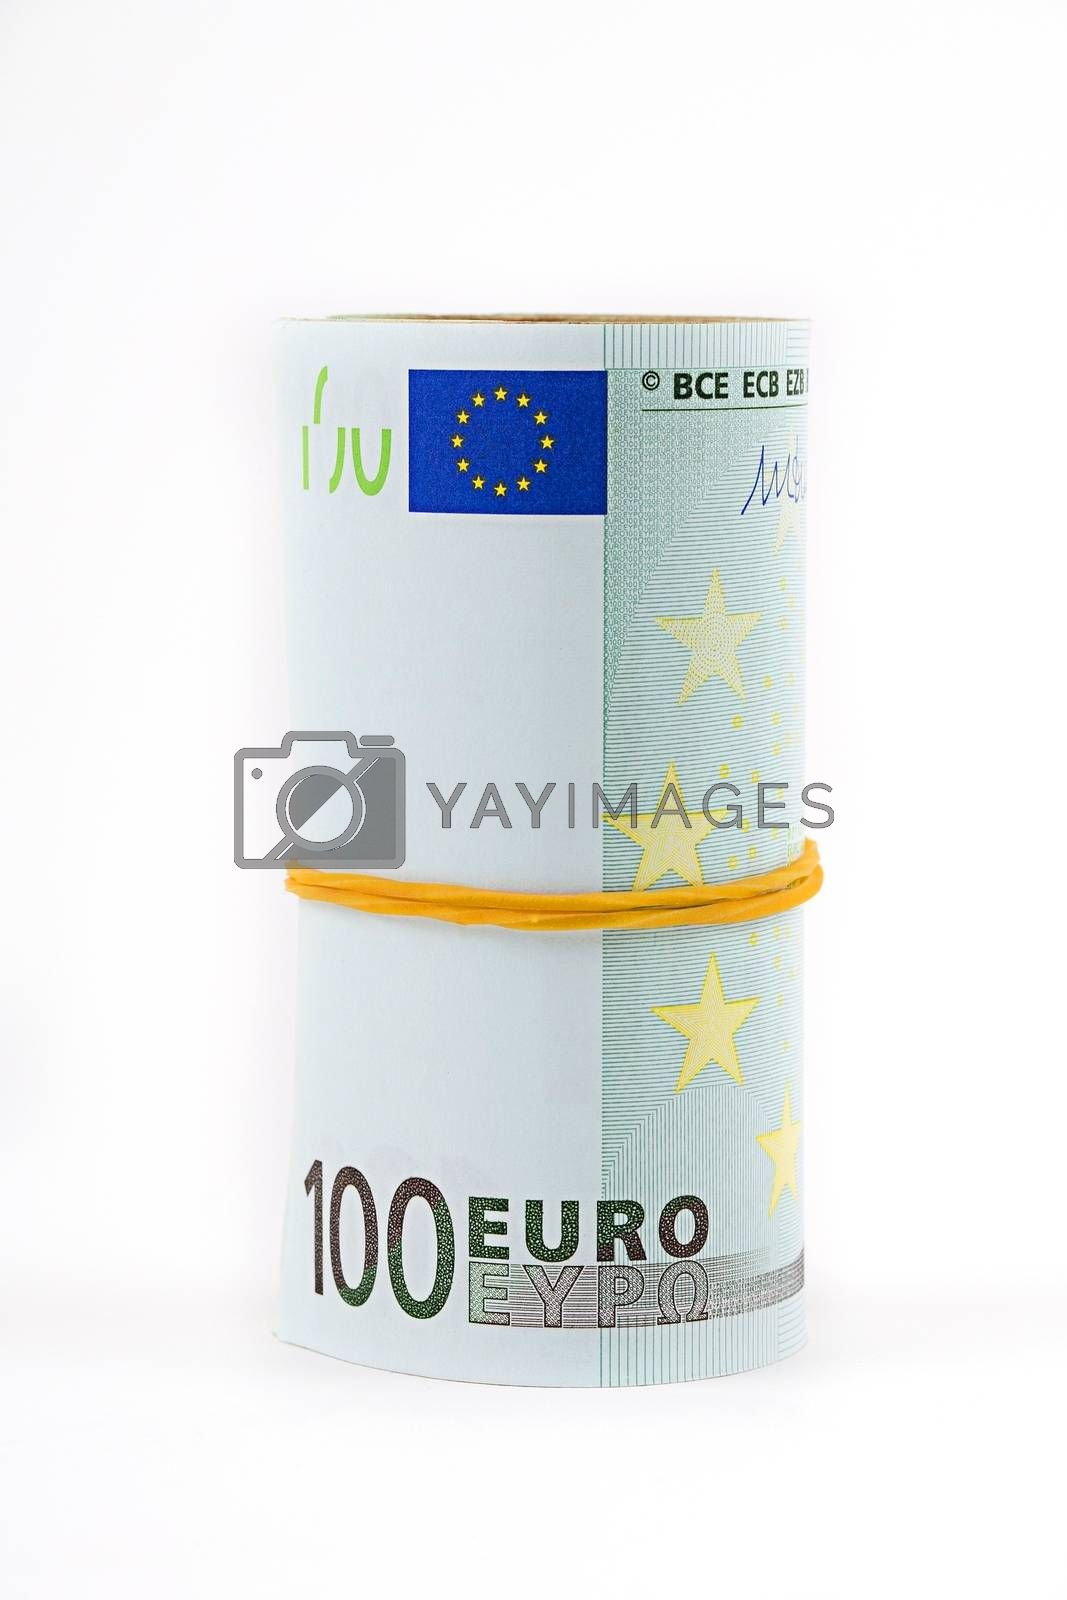 Rolled up European currency - 100 euro